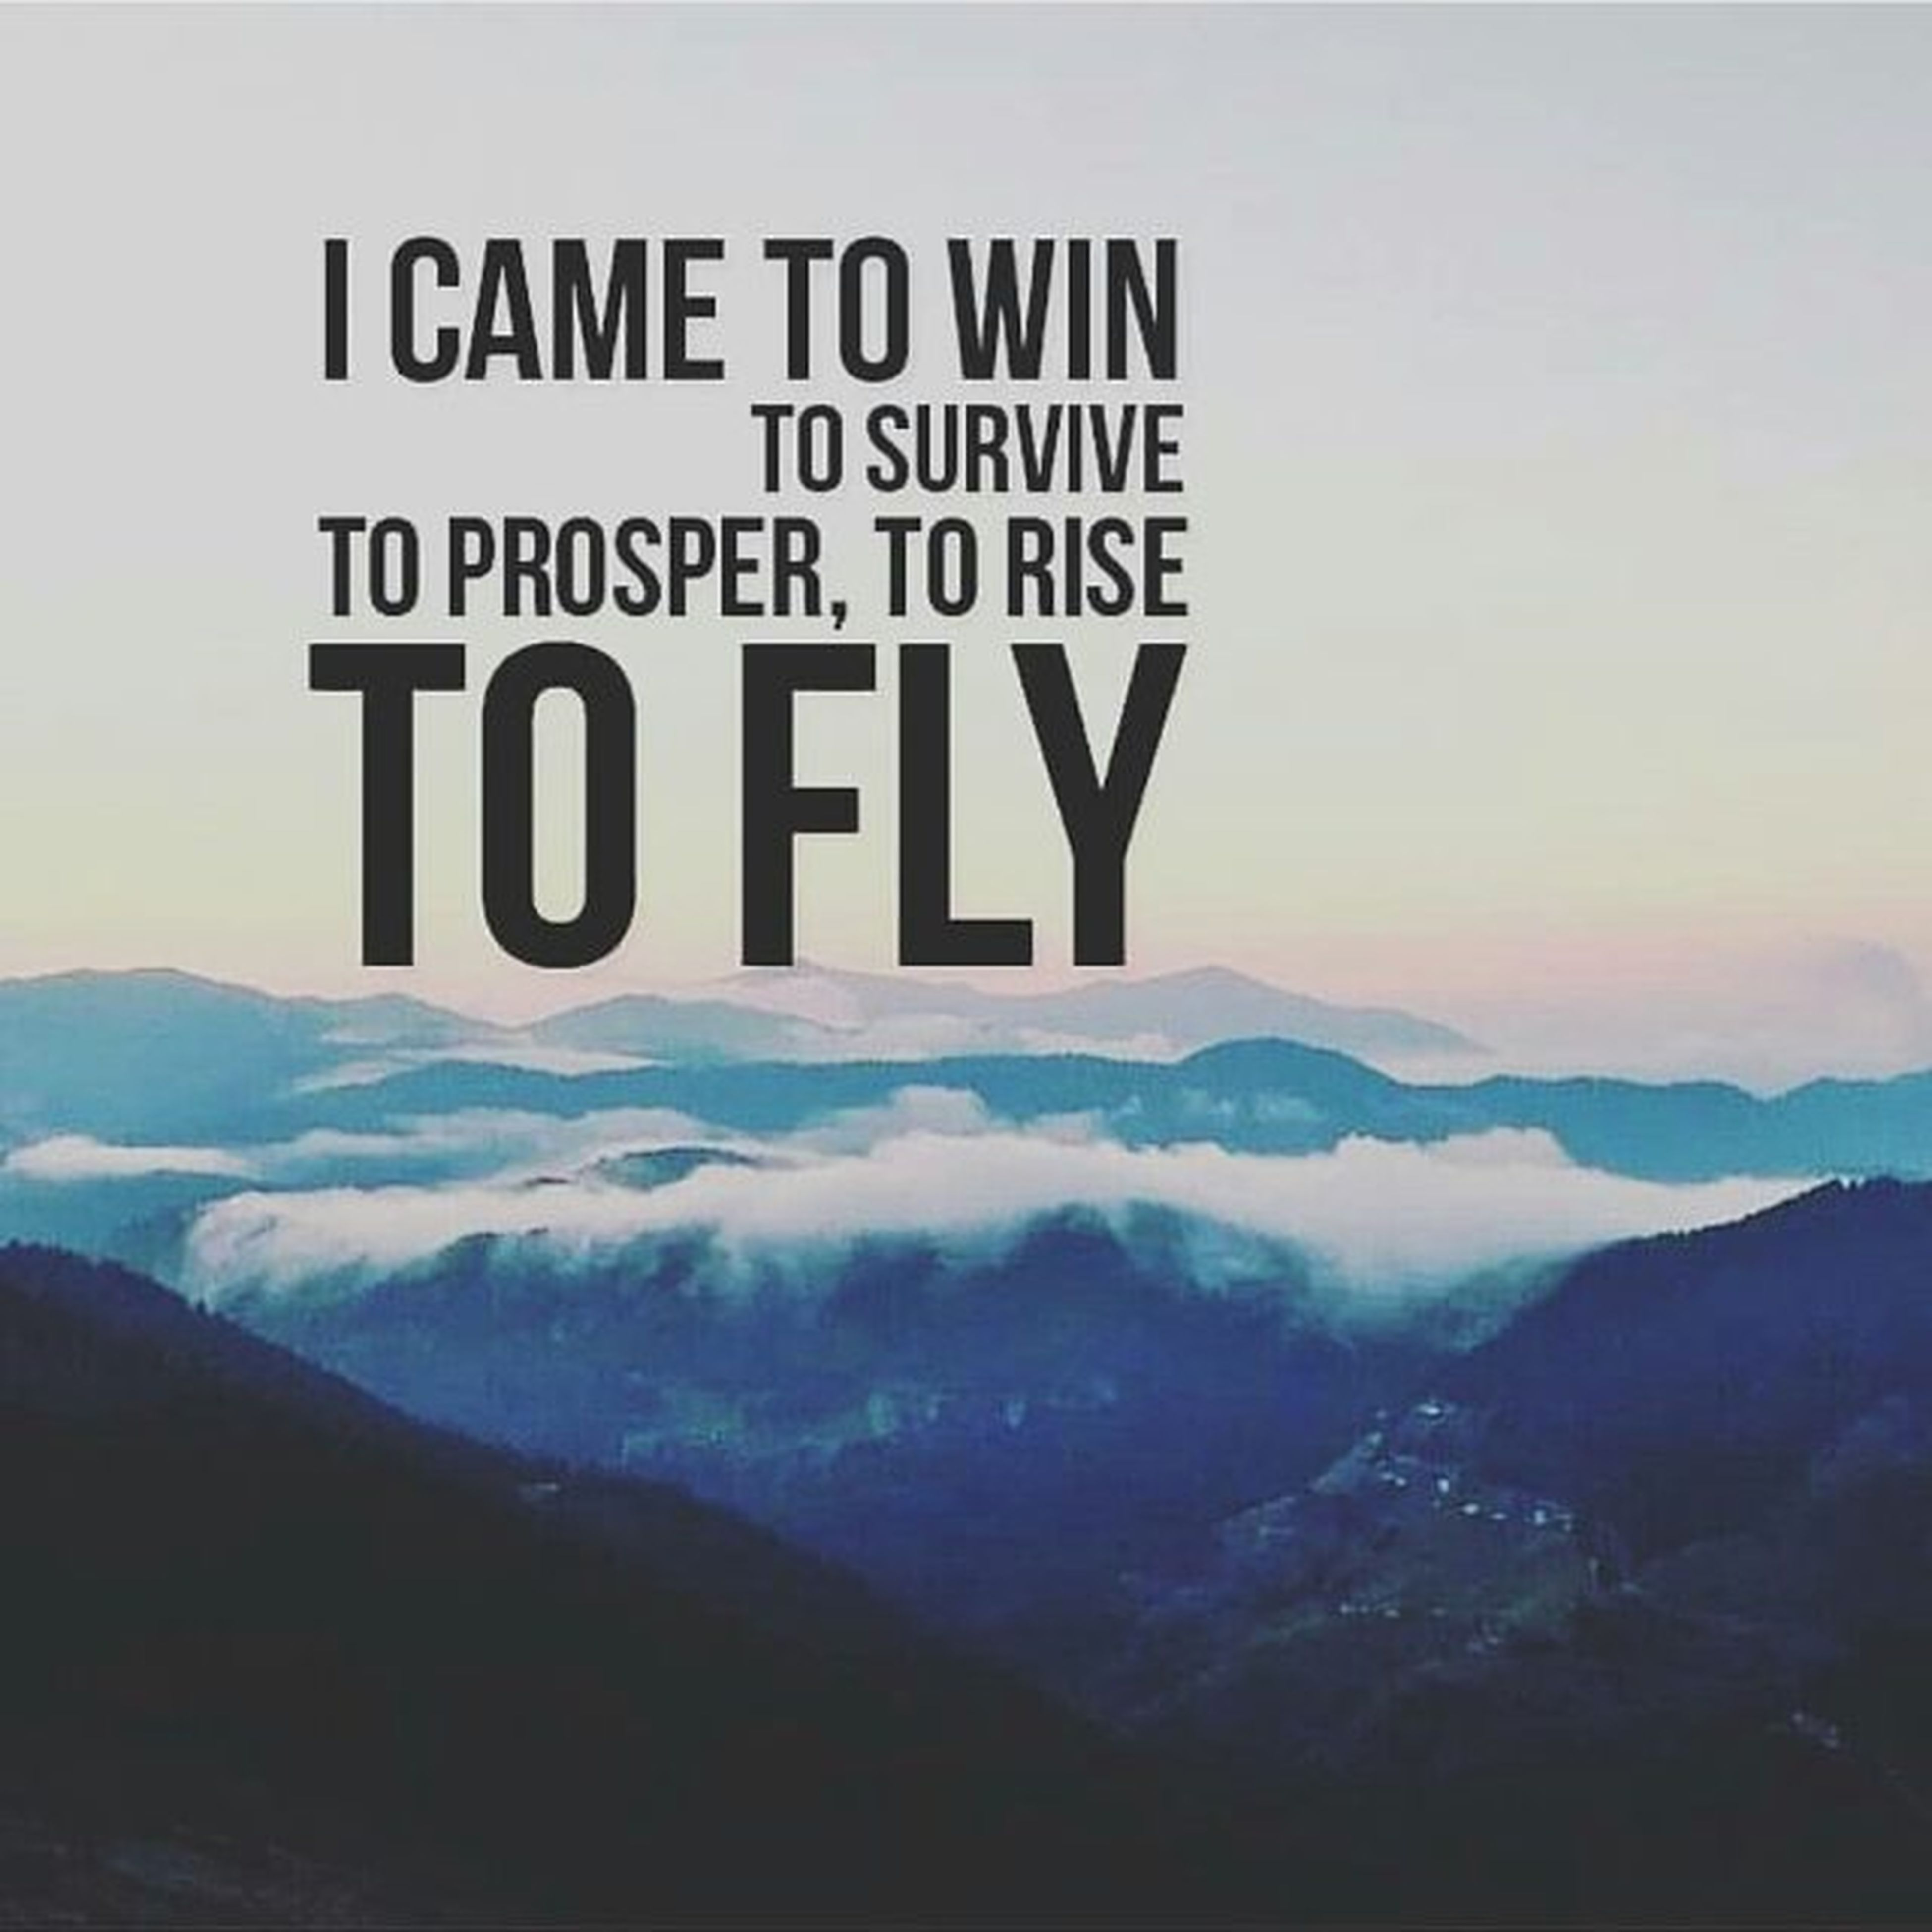 That's all!!! Mylife Icametowin Tofly Tosurvive Toprosper Torise Highmountain .Slogans Truesayings